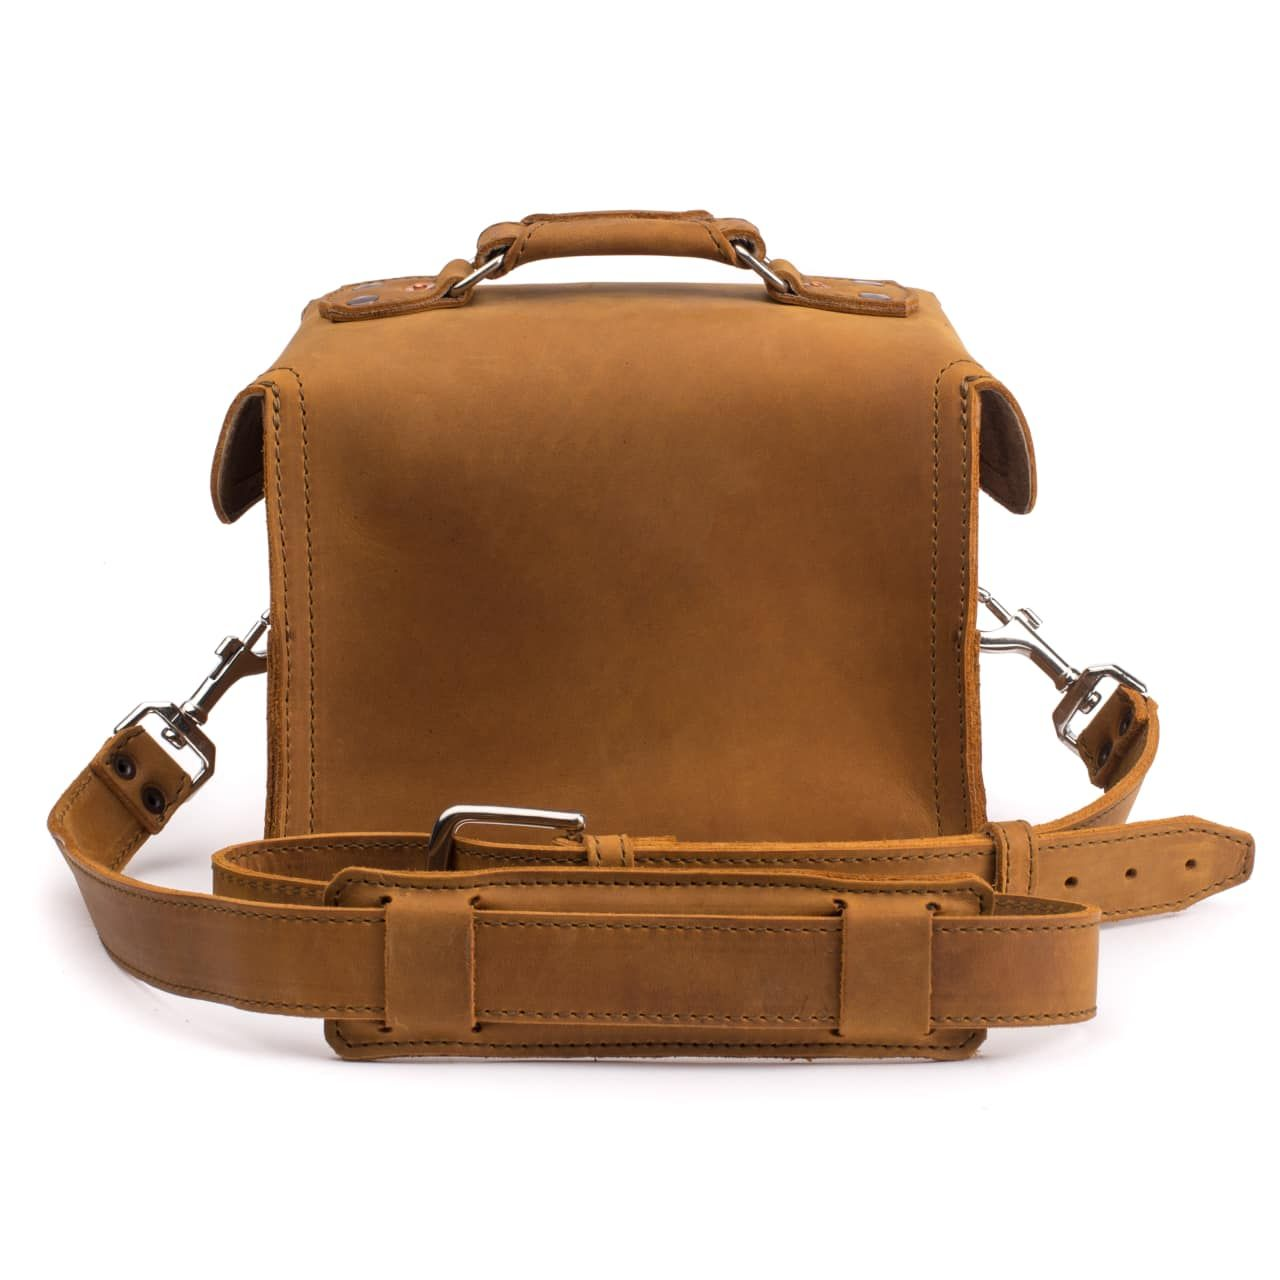 leather gadget bag medium in tobacco leather